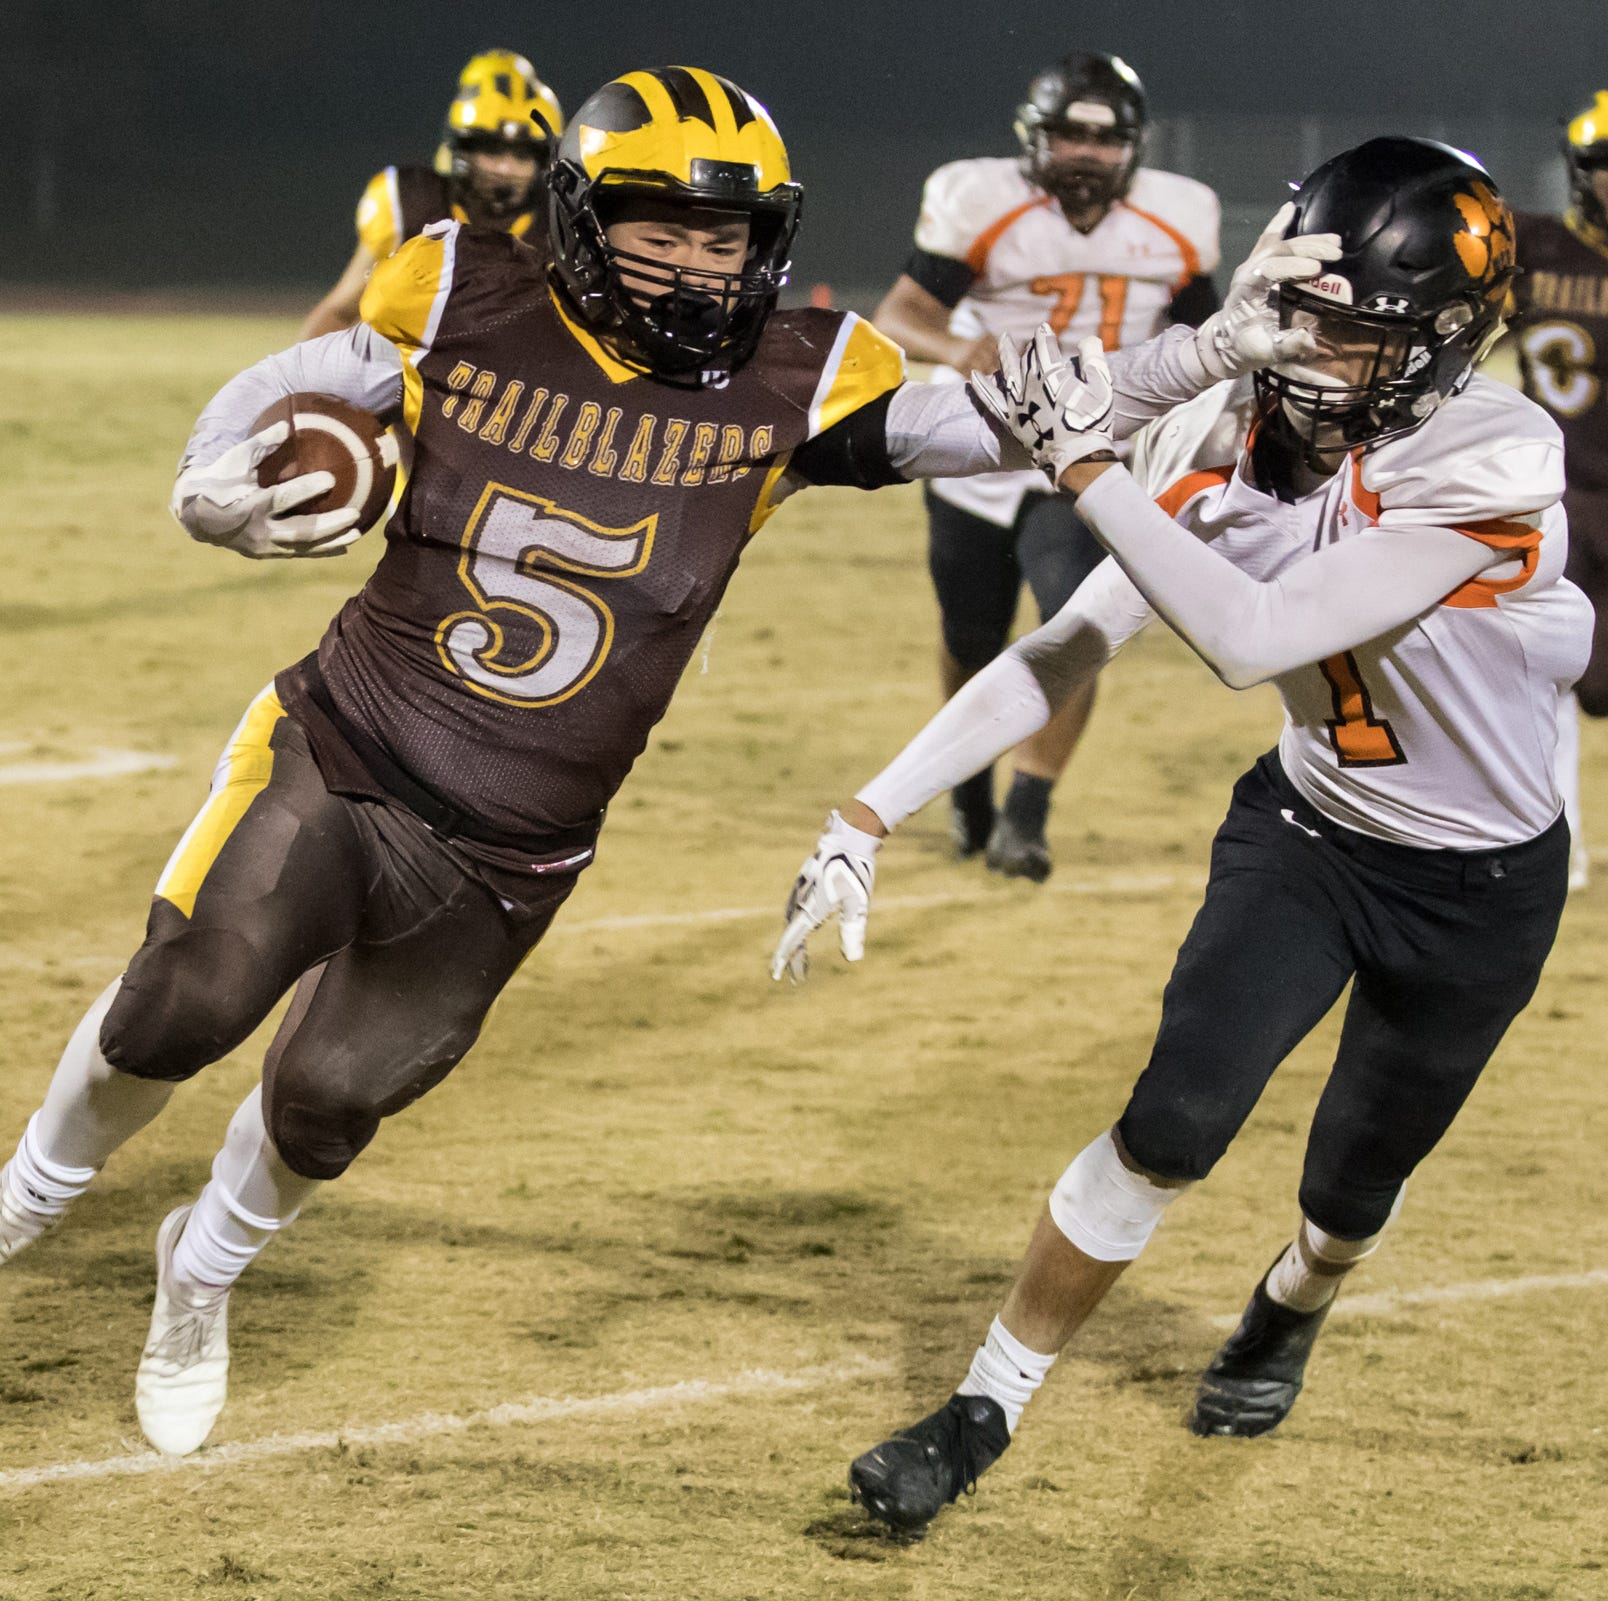 Did Golden West advance to championship game for second year in a row?